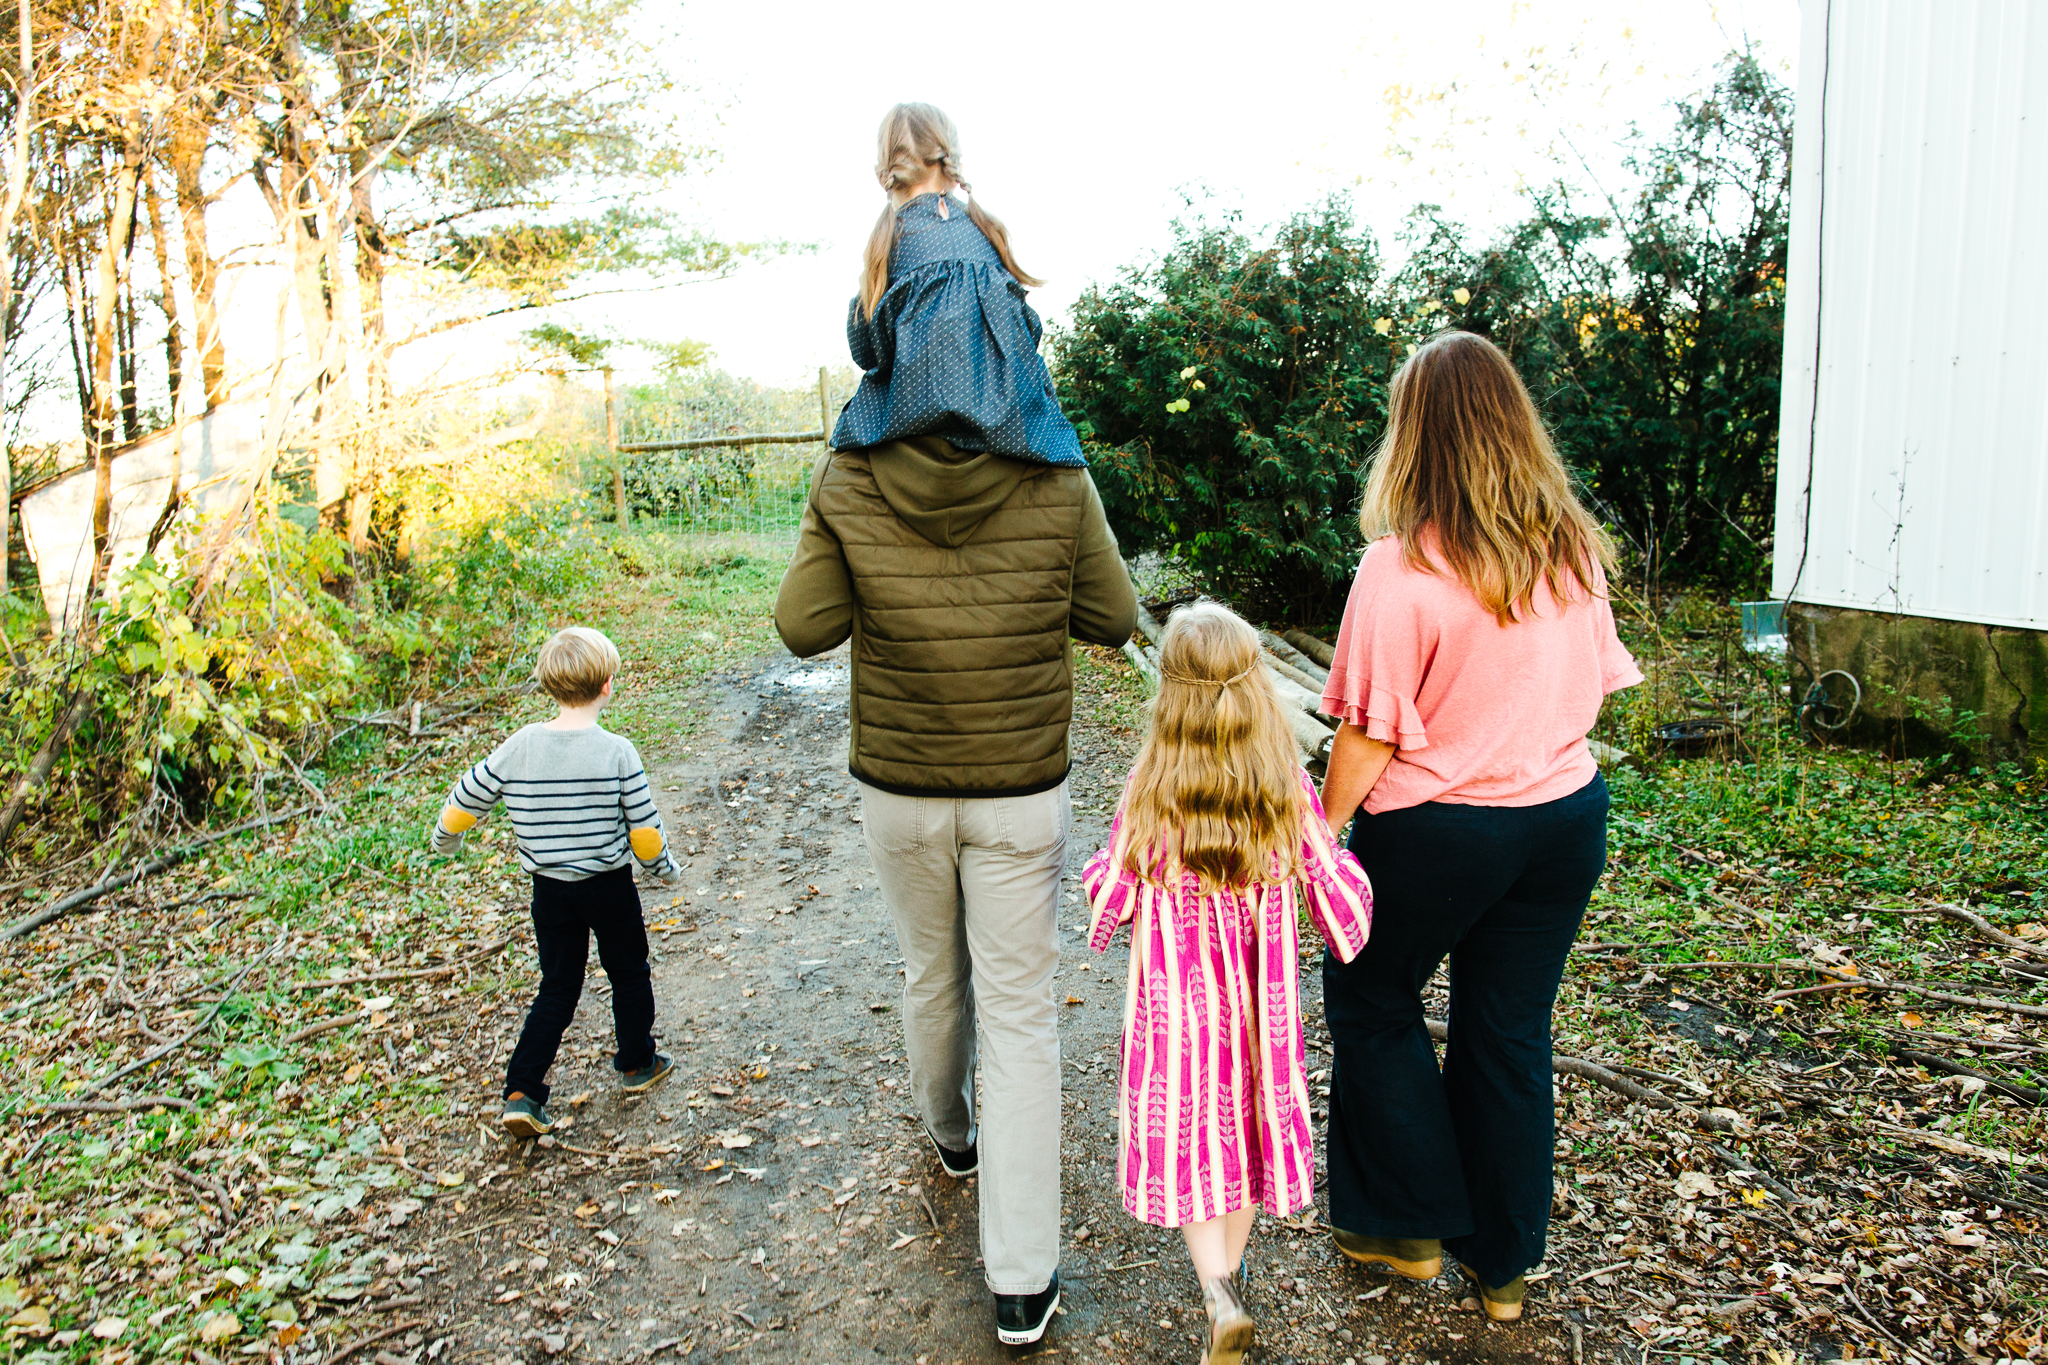 Bothell Area Fall Family Mini Sessions In An Apple Orchard